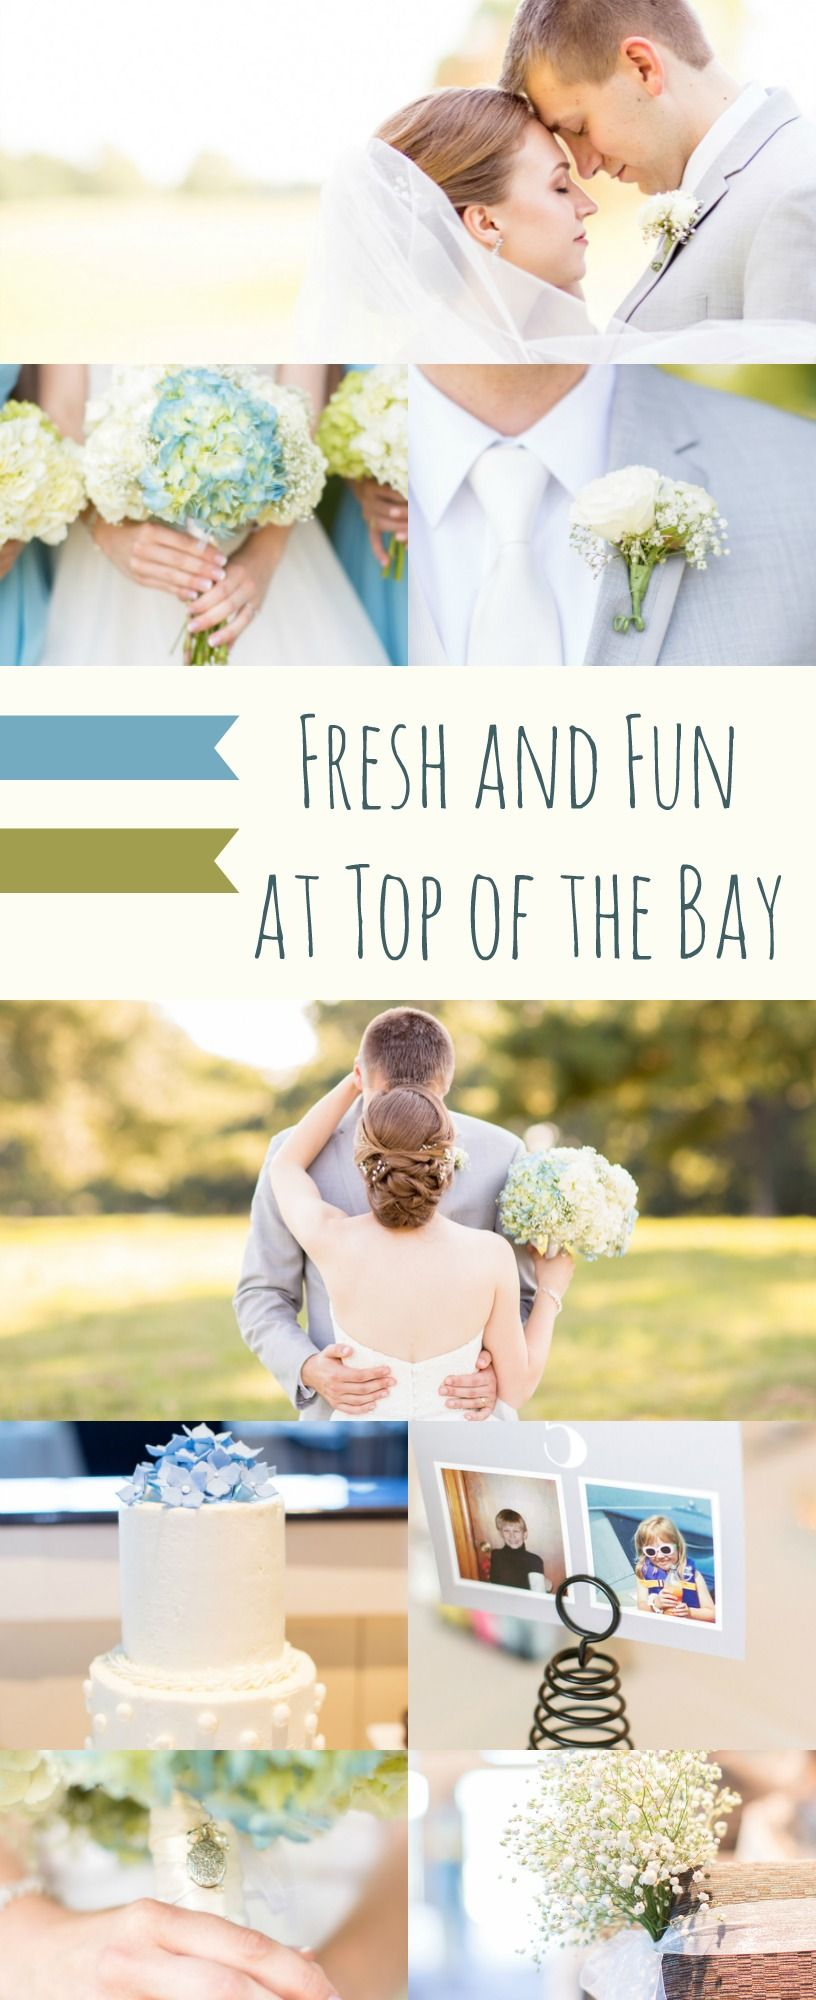 Wedding theme ideas by color  Fresh and Fun at Top of the Bay  Unique weddings Wedding and